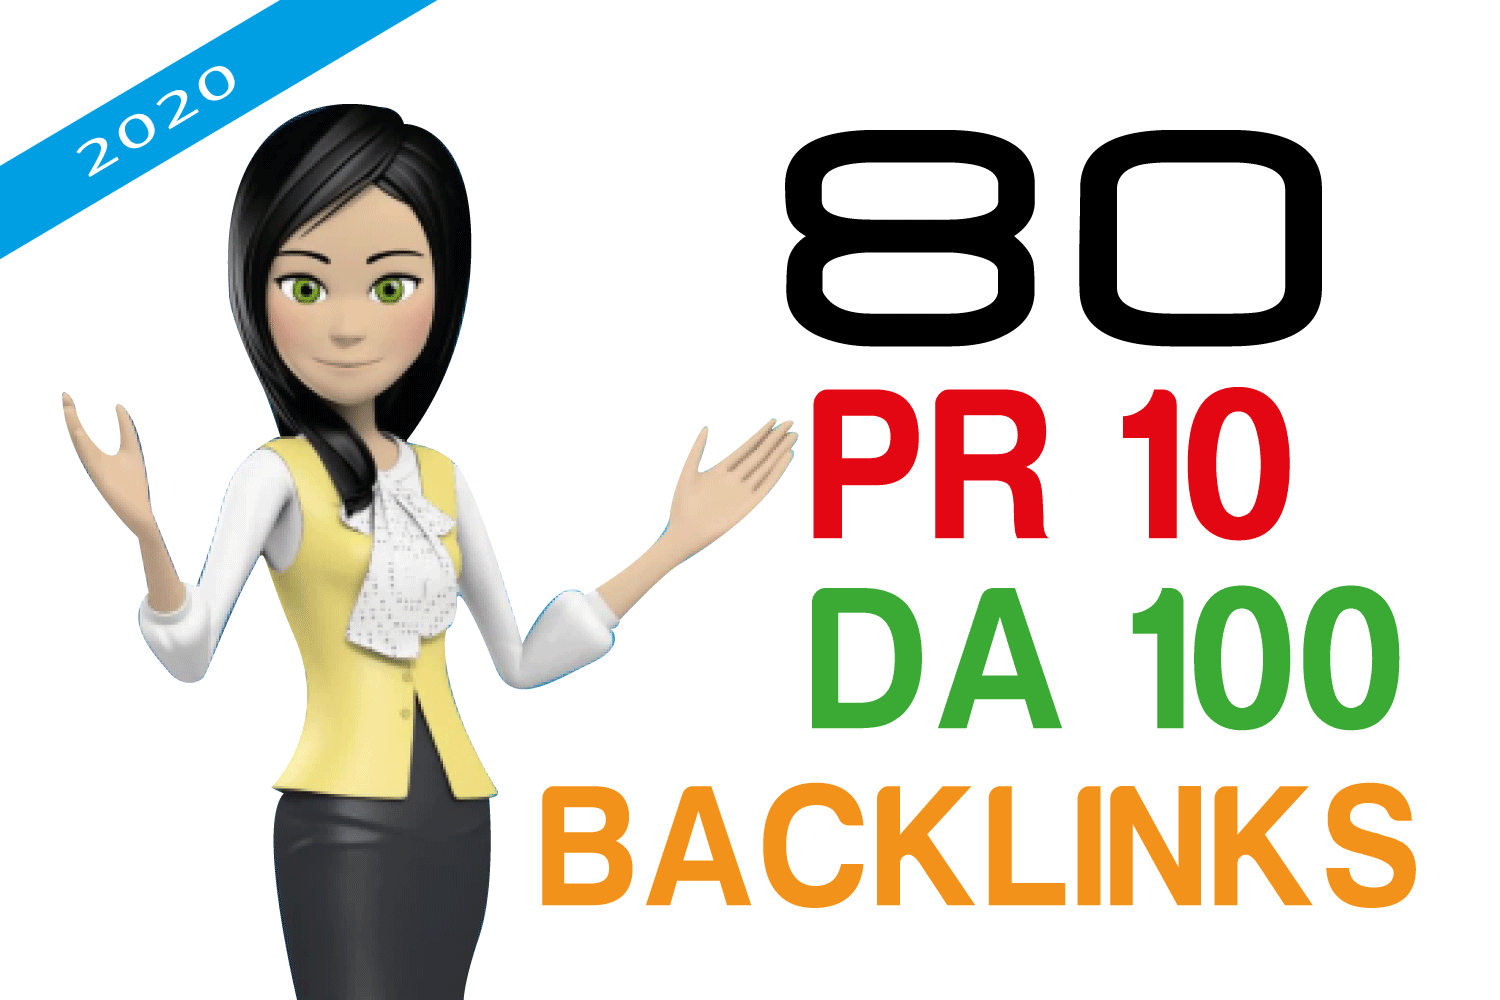 I Will MANUALLY CREATE 80 UNIQUE PR10 SEO BackIinks on DA100 sites Plus Edu Links For Fastest Rankin